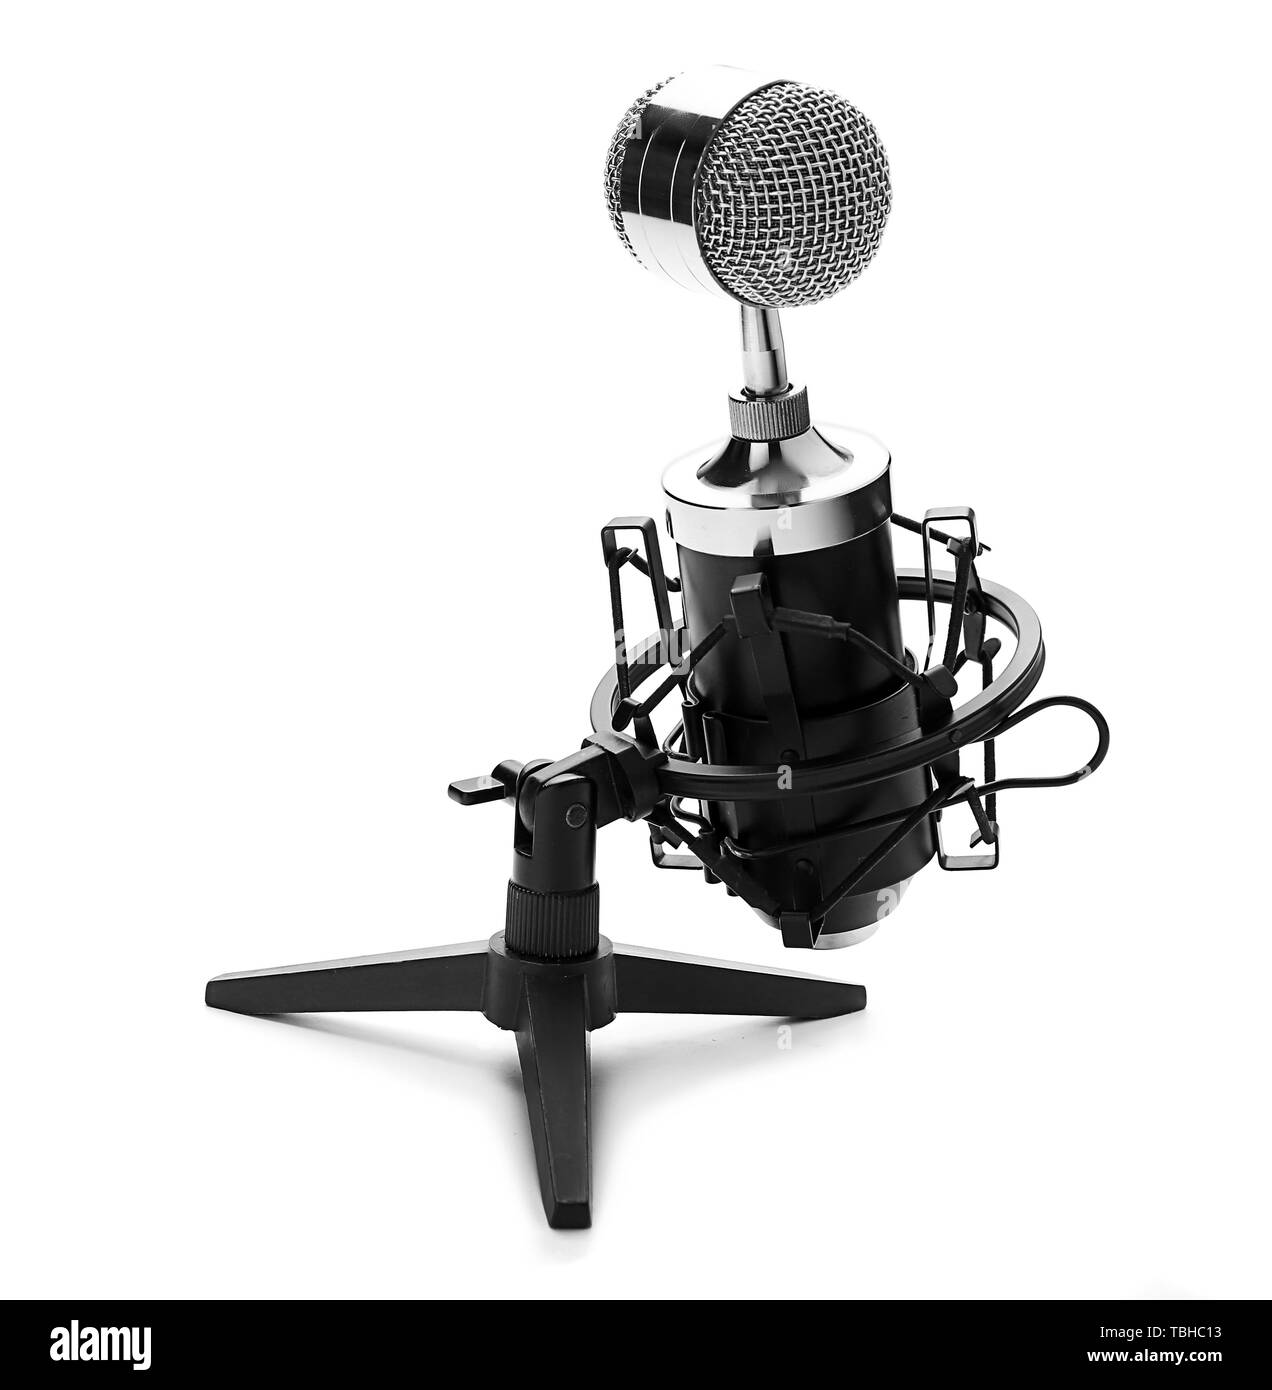 Microphone with stand on white background - Stock Image